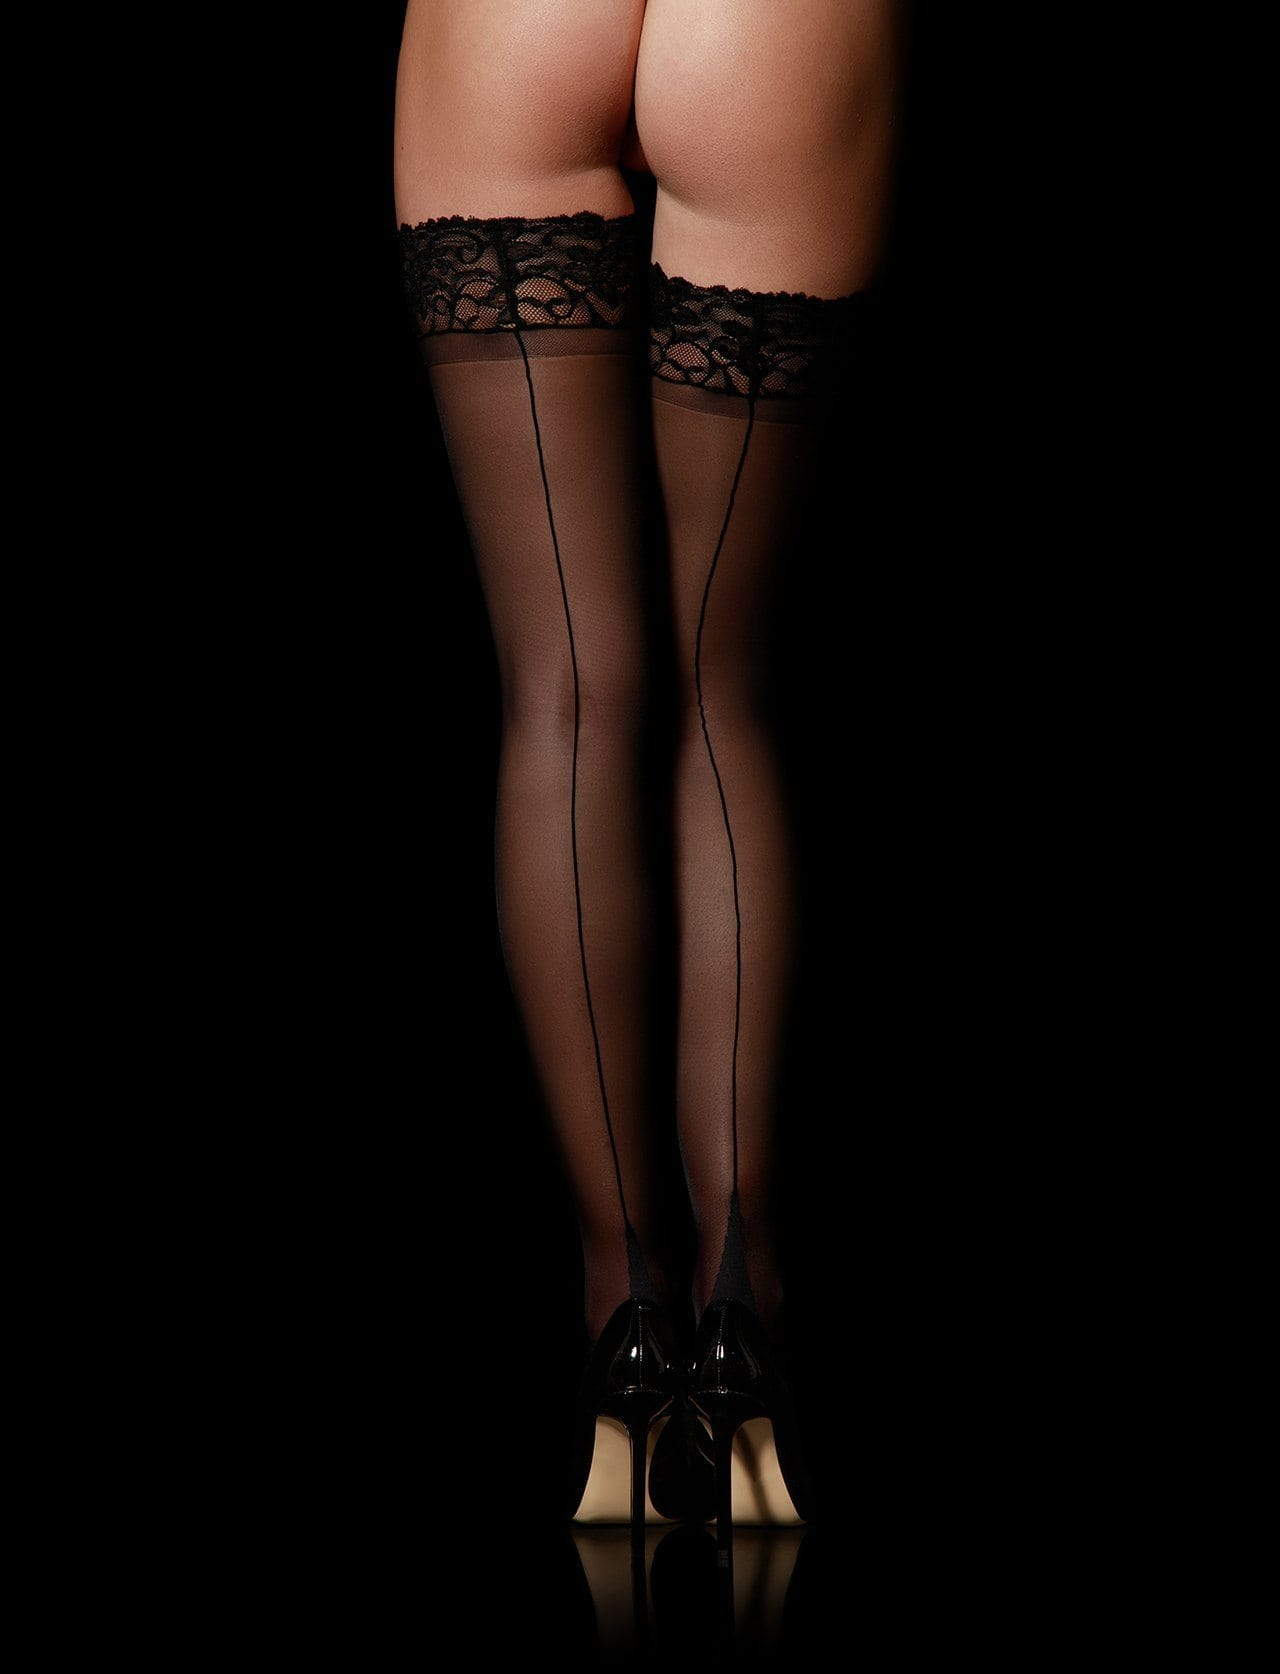 Lace Top Black Stay Up - Shop Hosiery | Honey Birdette UK